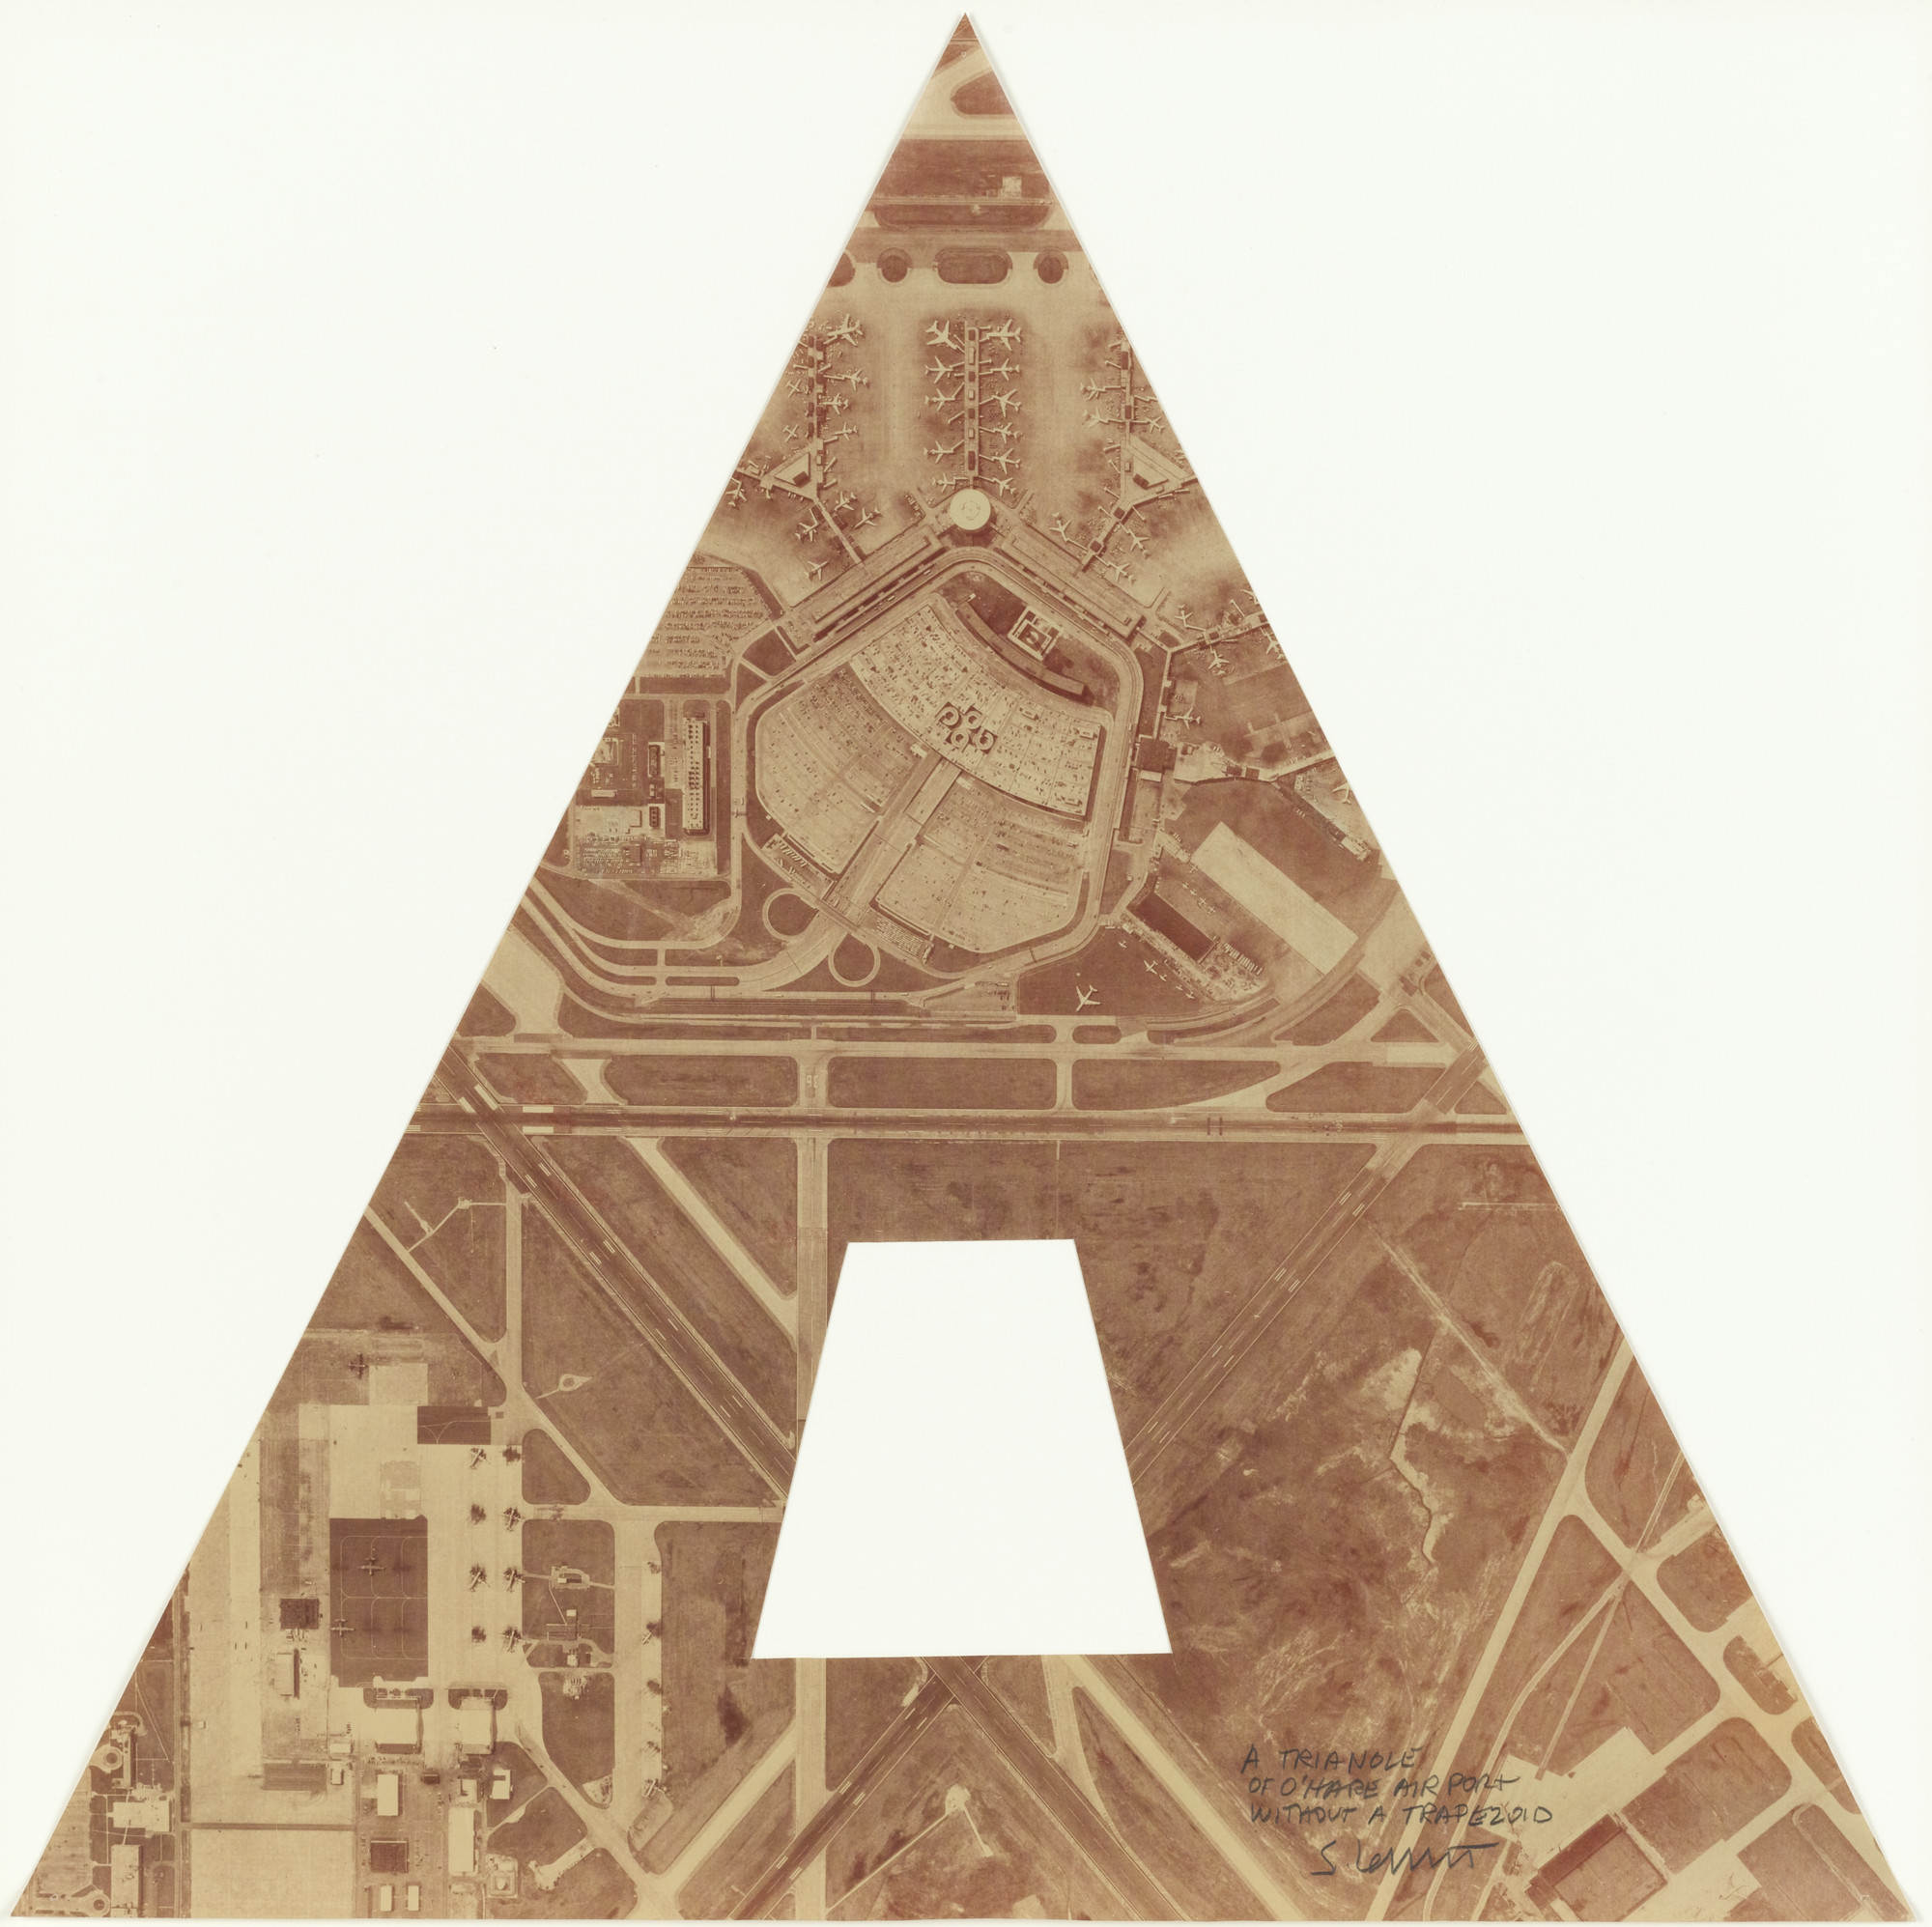 Sol LeWitt. A Triangle of O'Hare Airport without Trapezoid. 1979